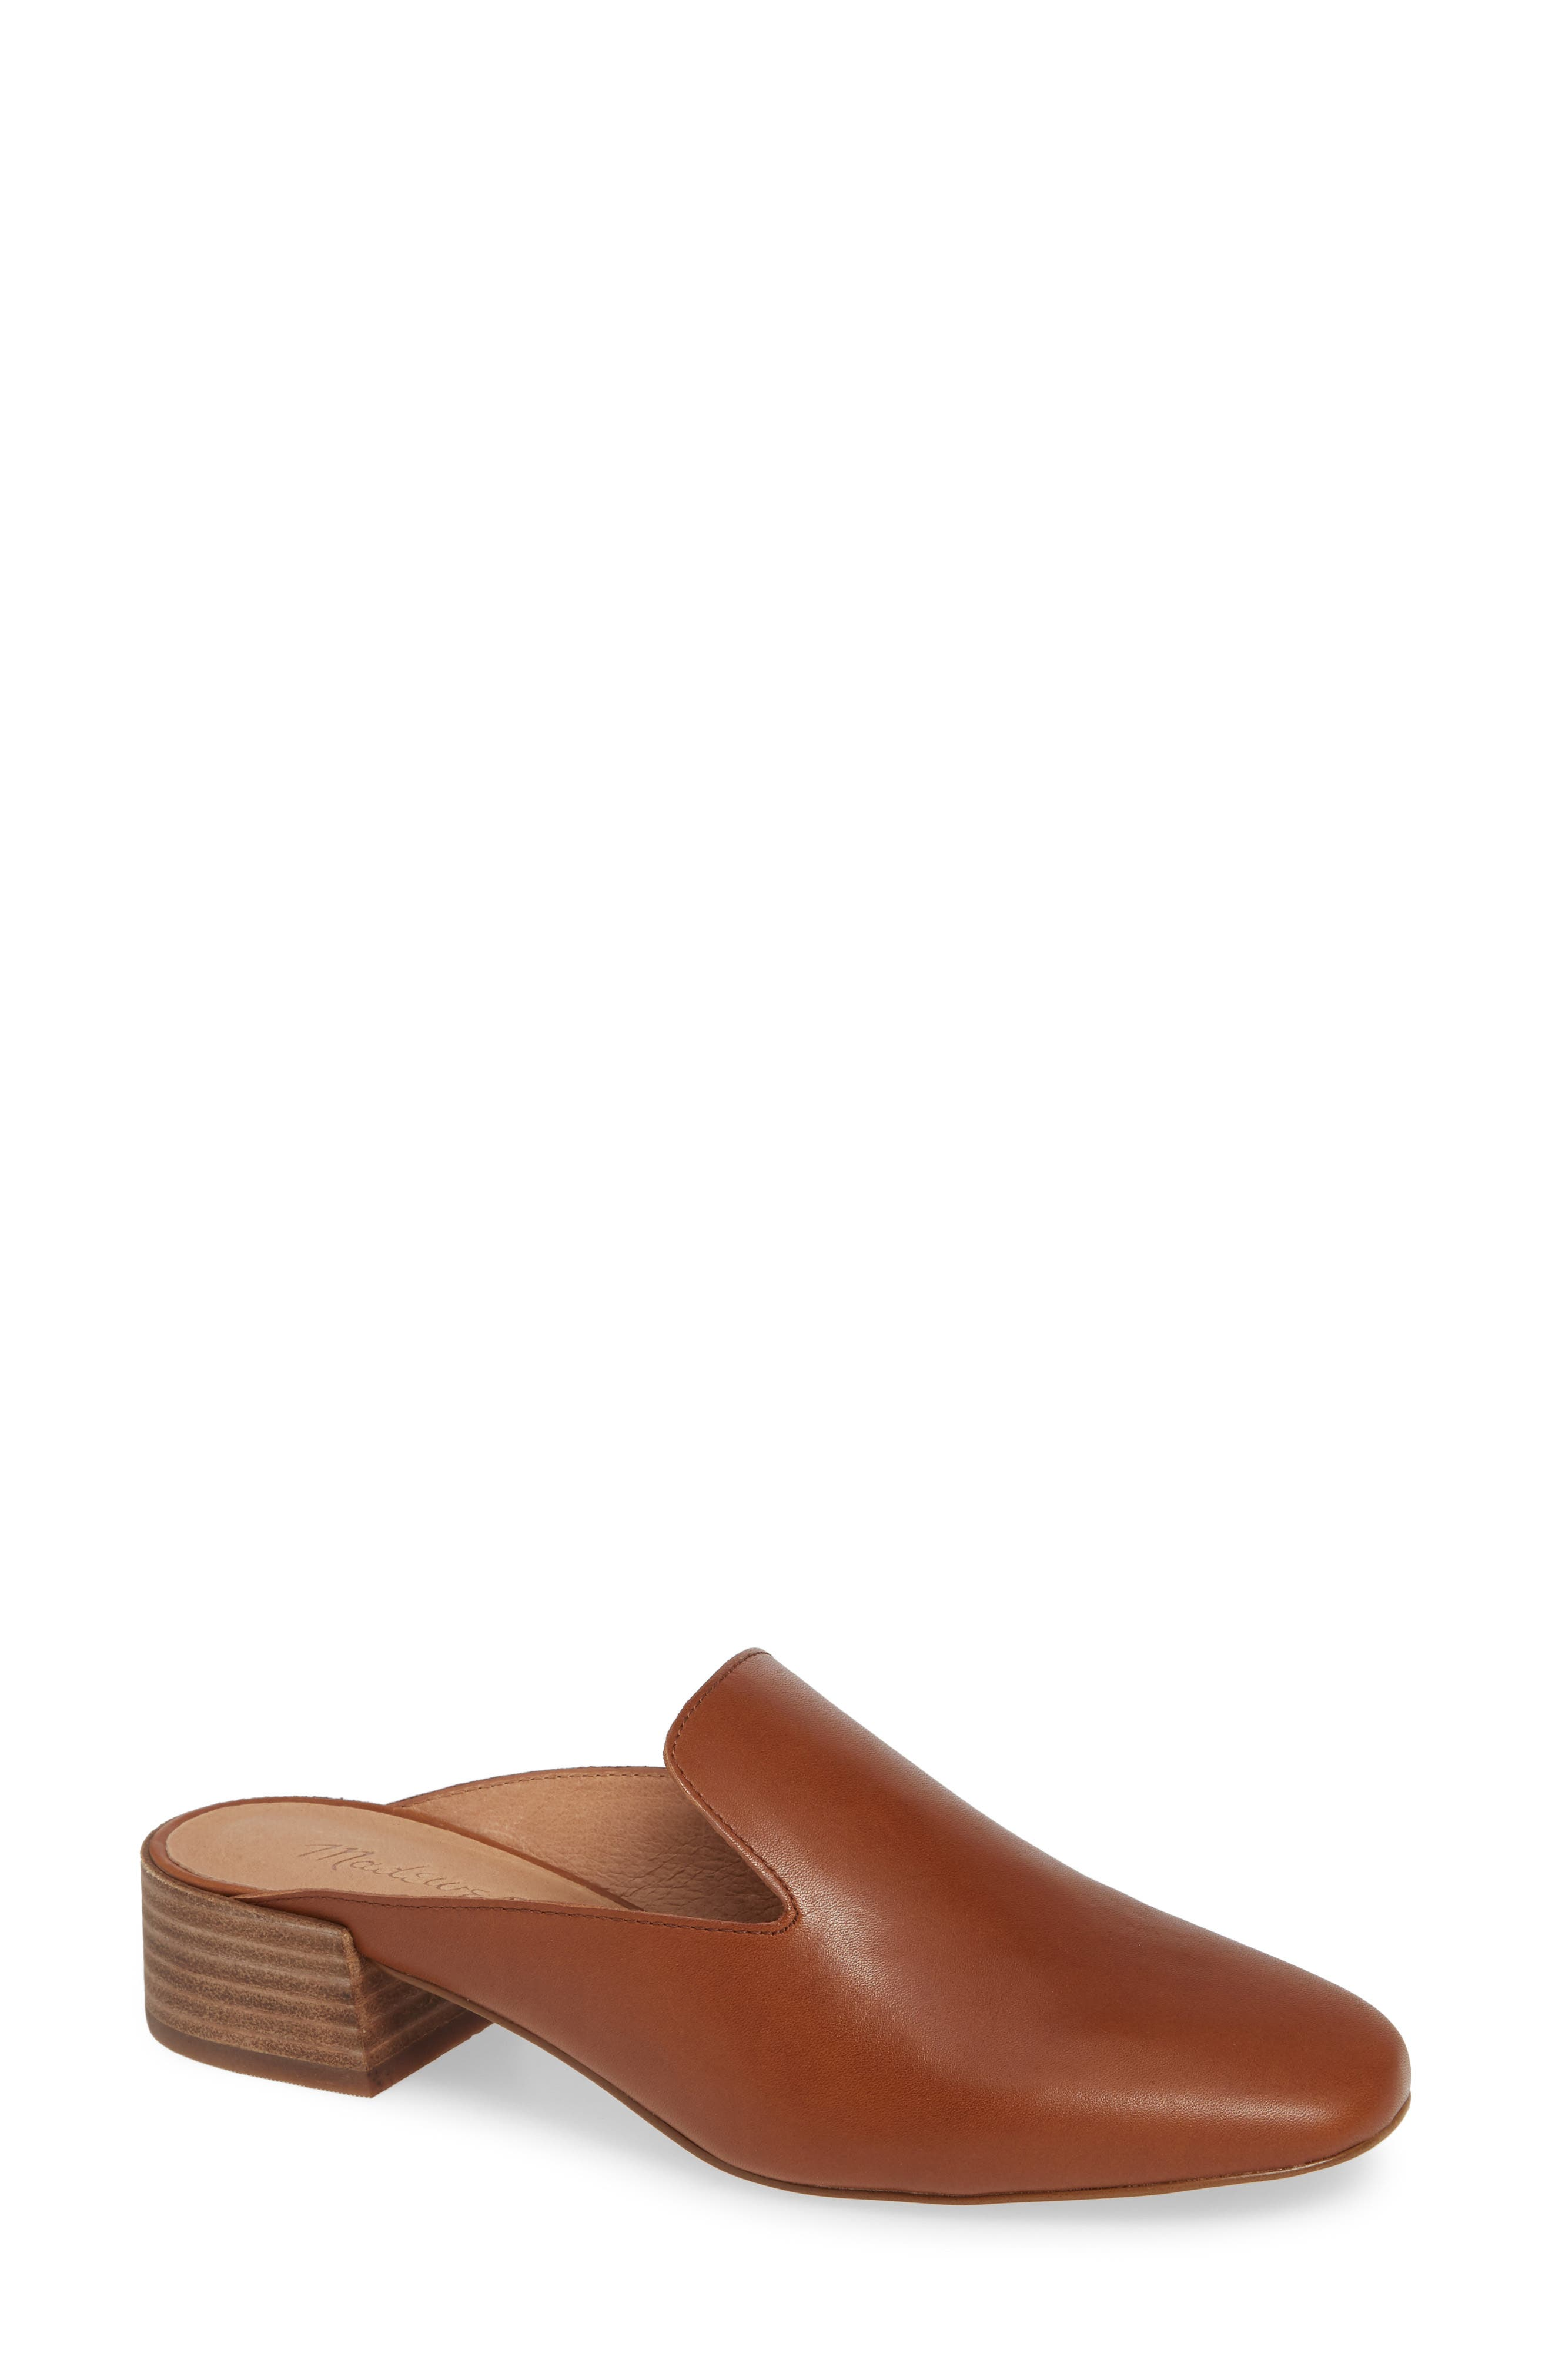 The Willa Loafer Mule,                             Main thumbnail 1, color,                             ENGLISH SADDLE VINTAGE LEATHER